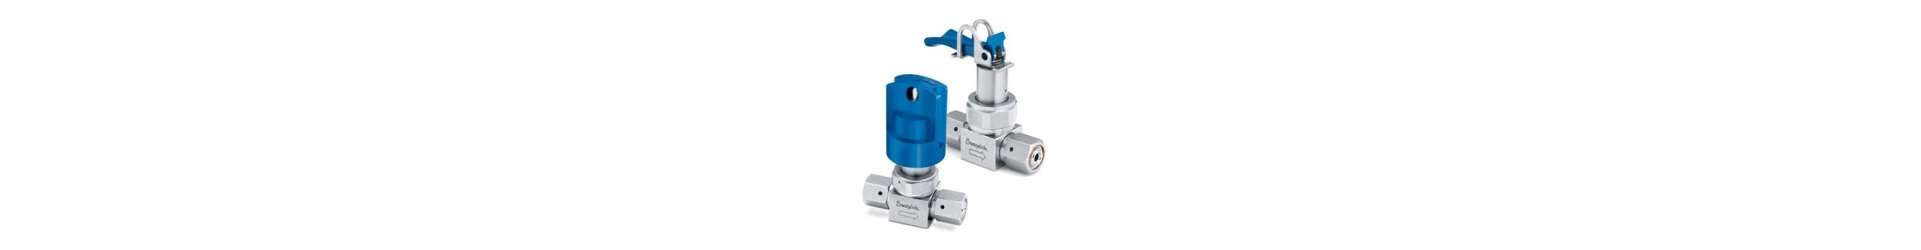 Ultrahigh-Purity Valves